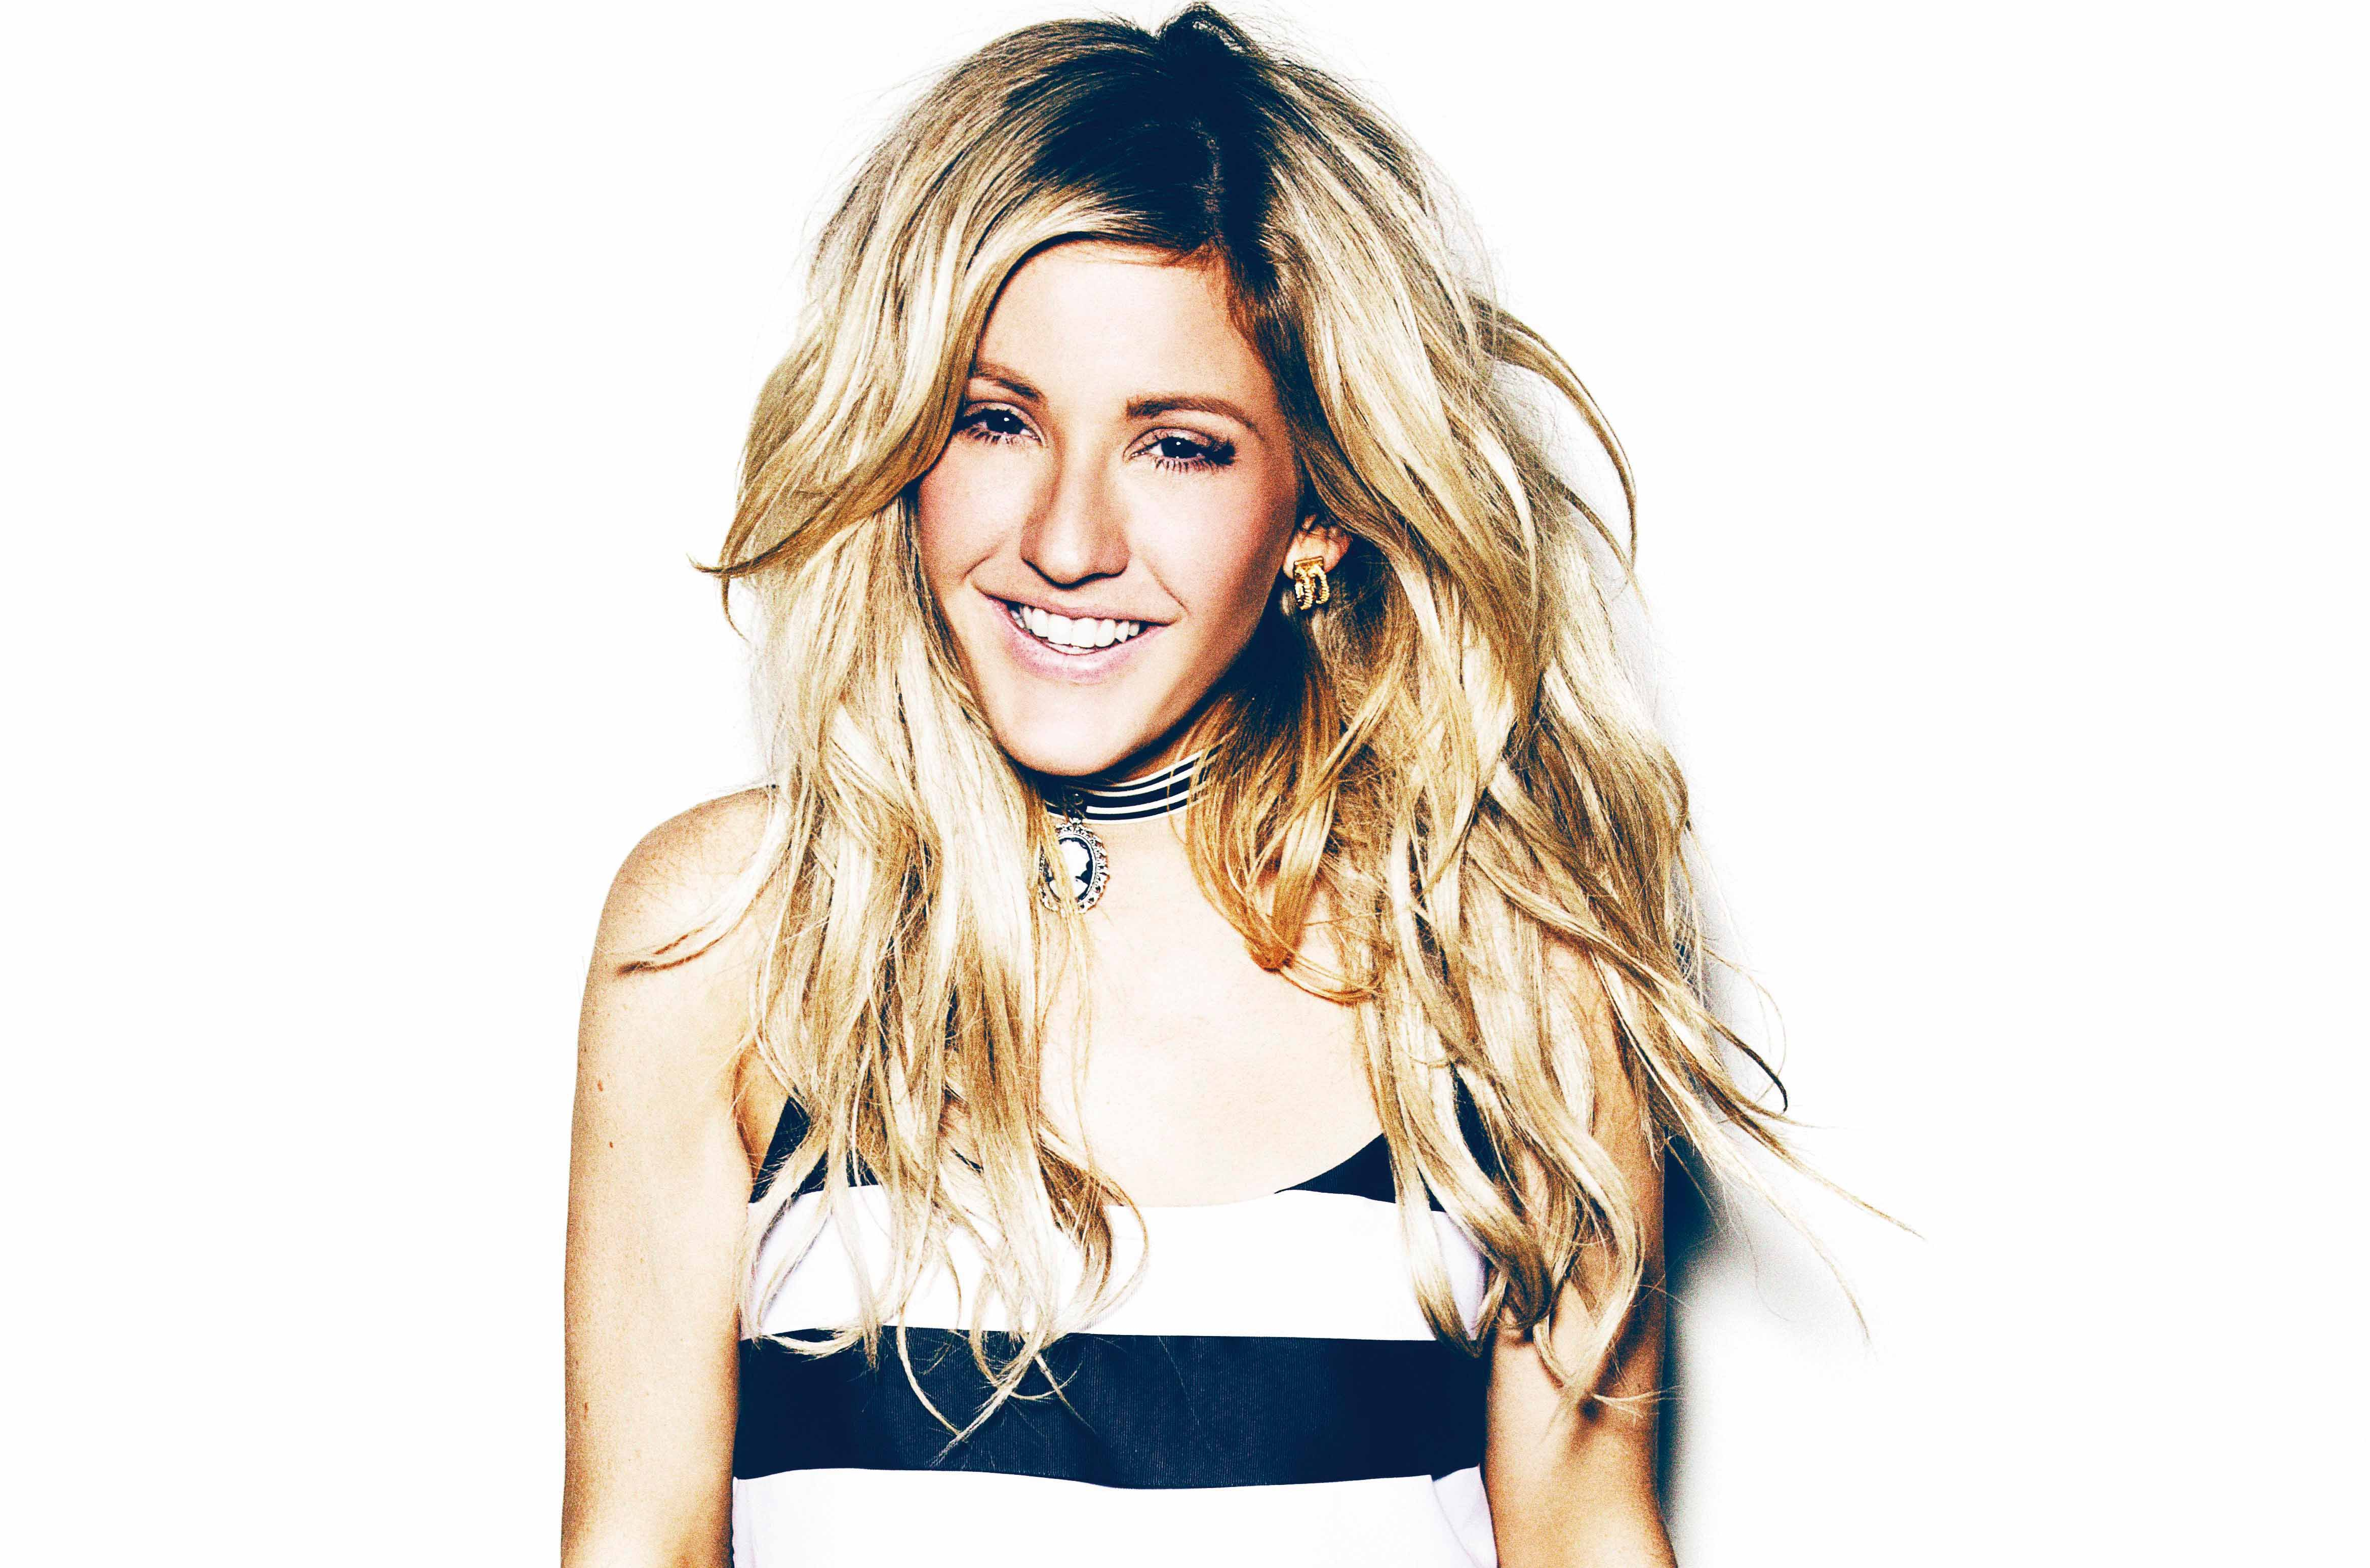 Pictures Of Ellie Goulding